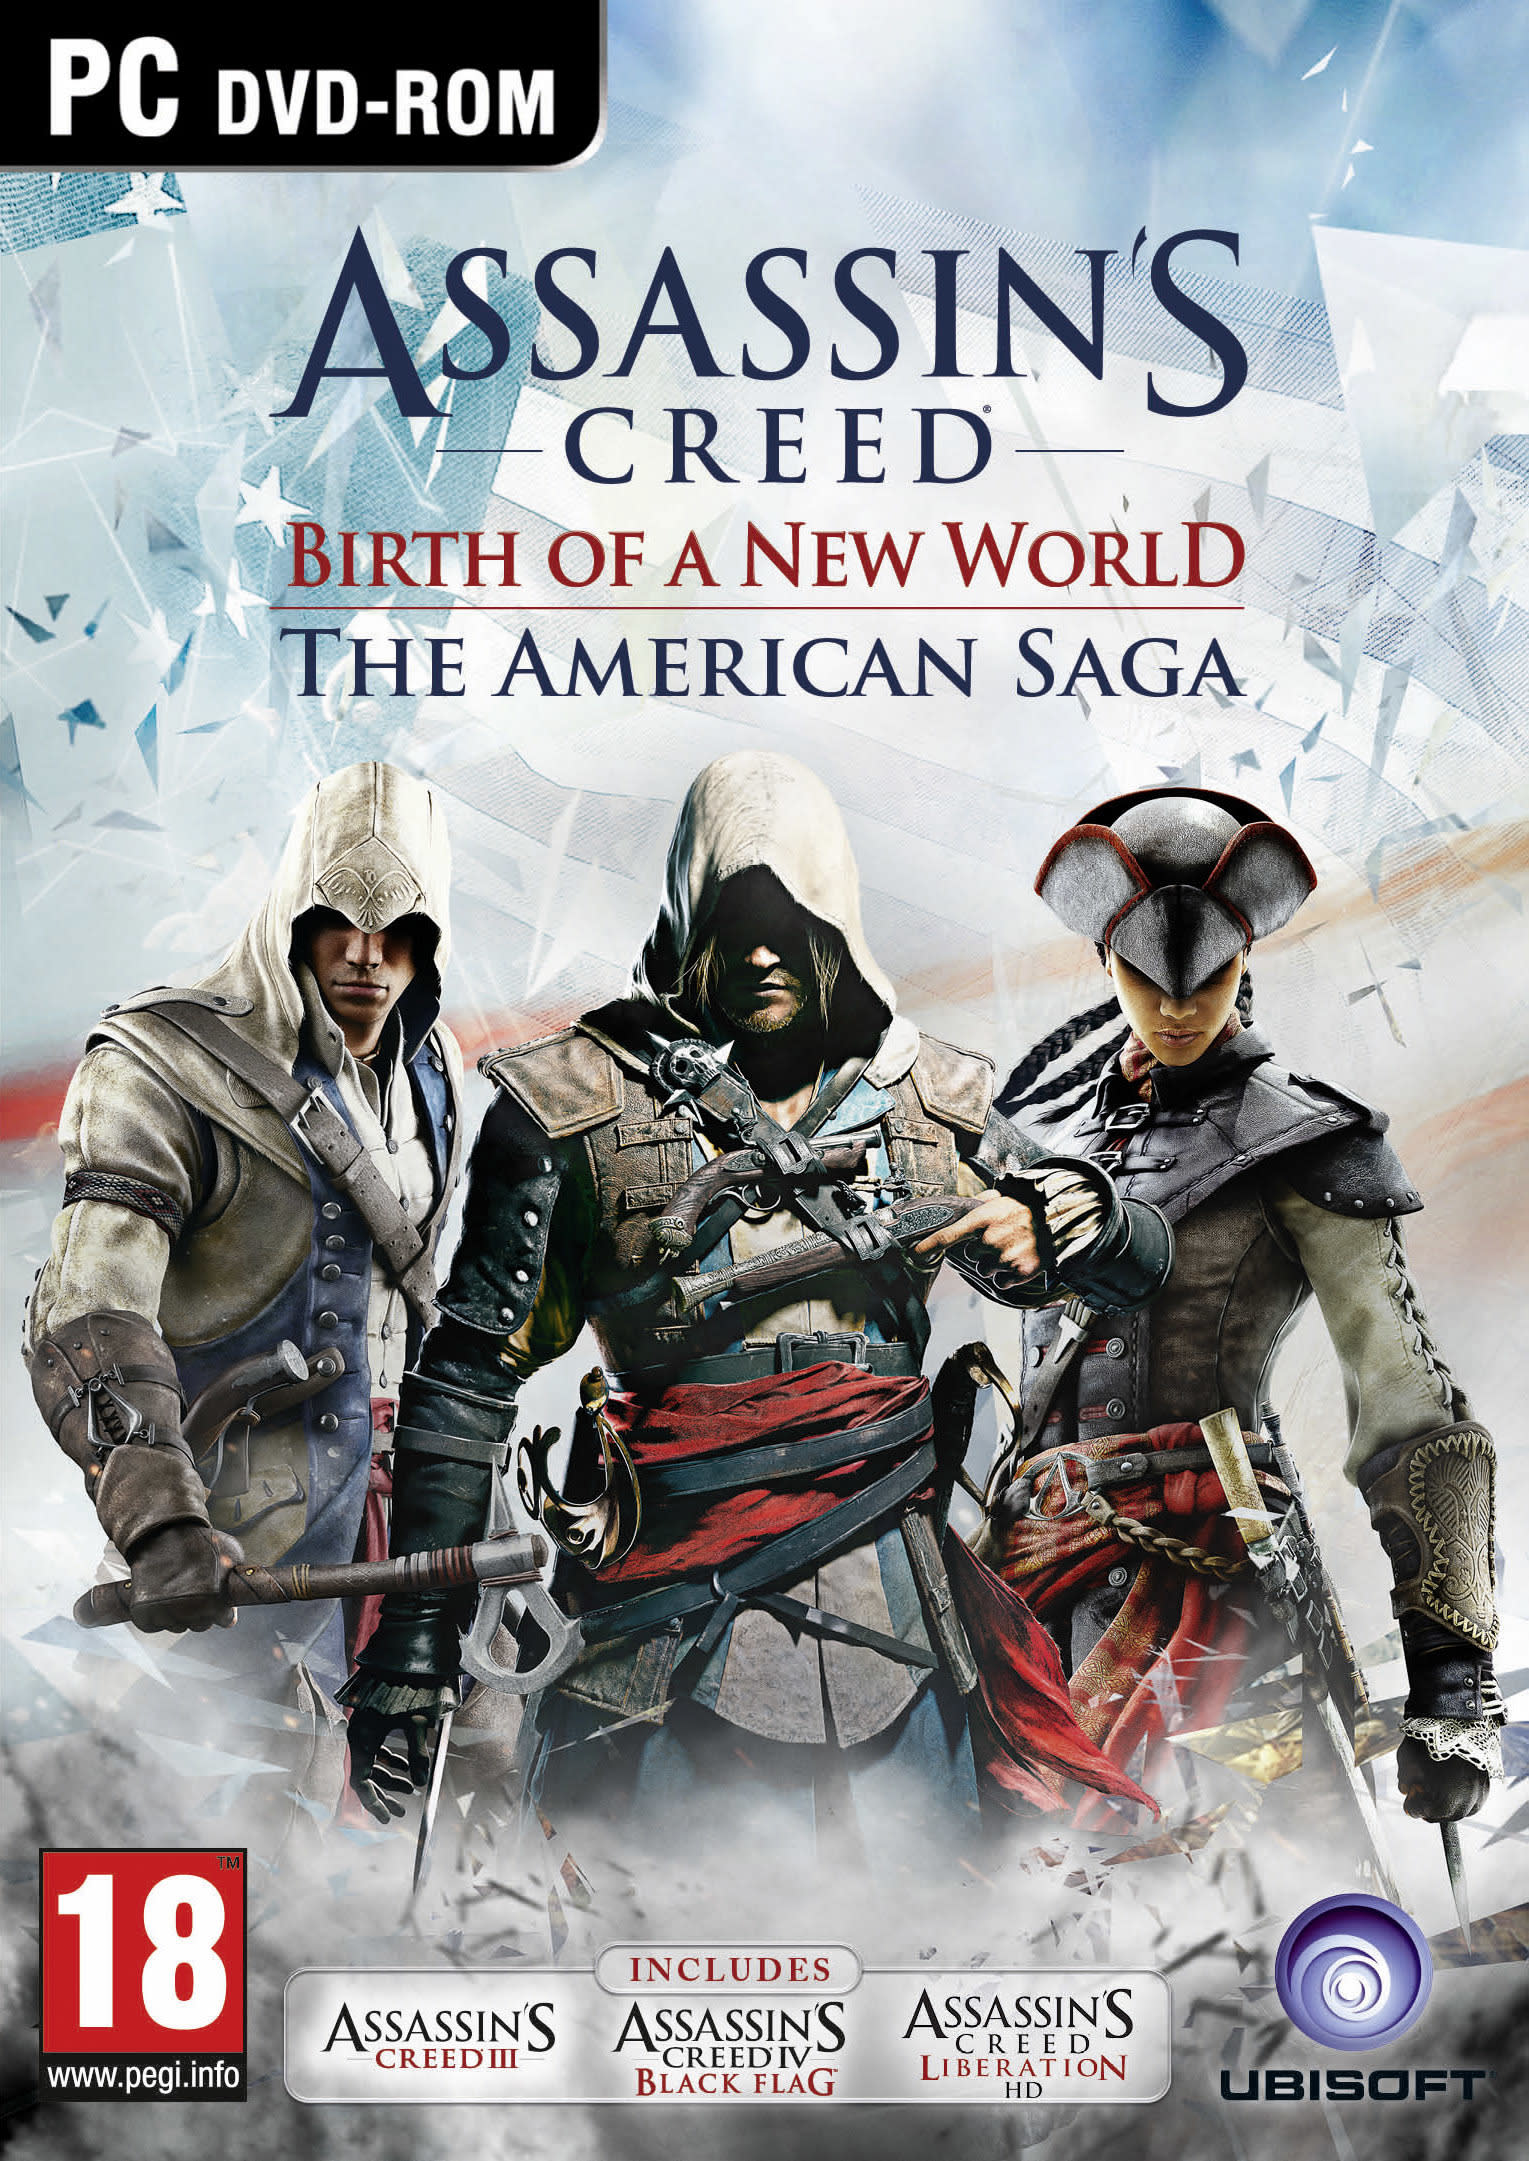 Assassin S Creed Bundles Up Its American Saga For October Engadget